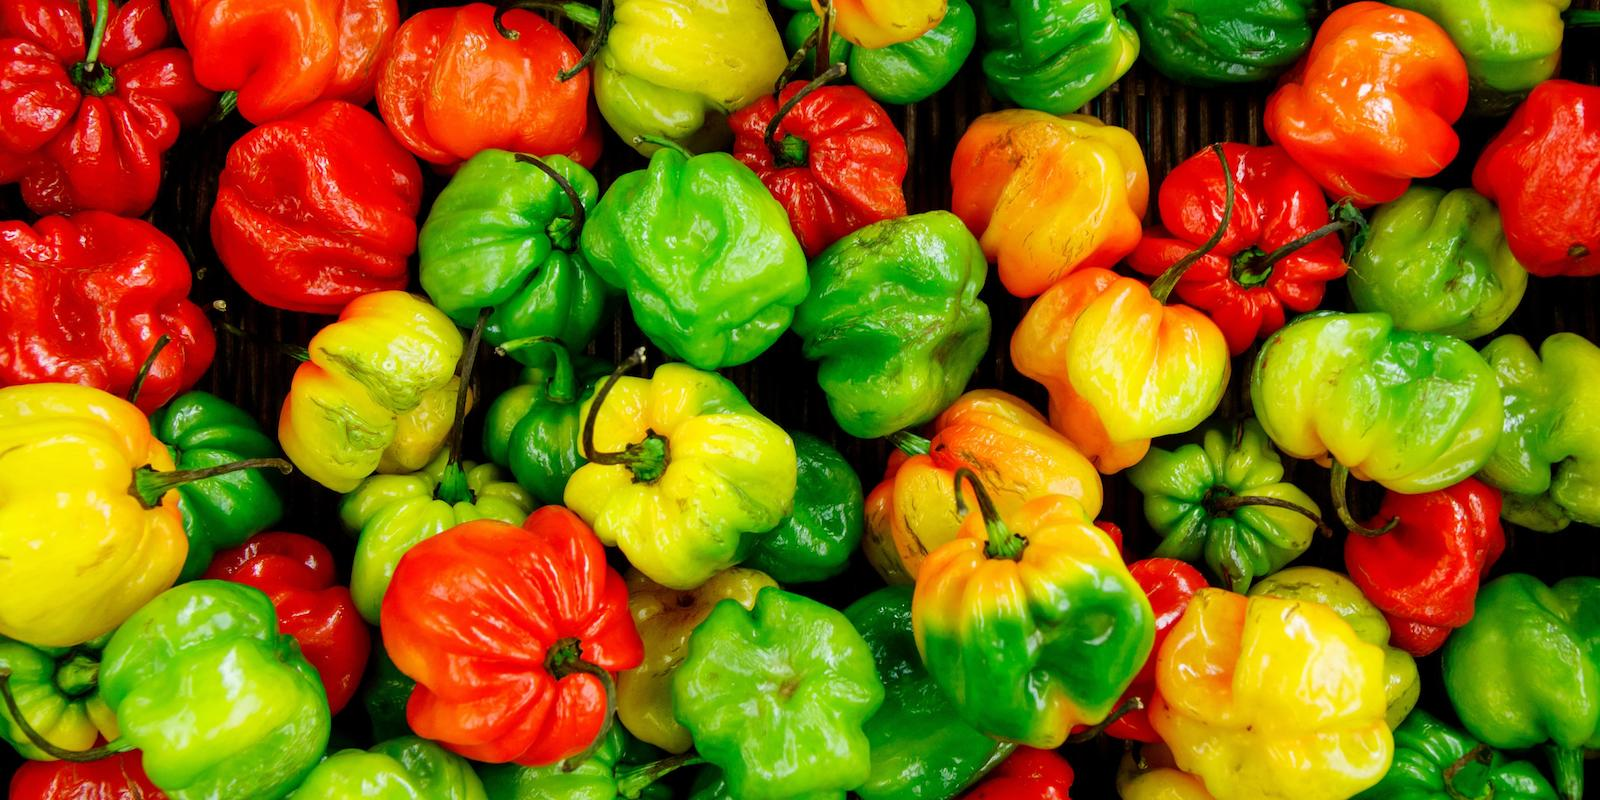 A picture of red, green and yellow bell peppers.